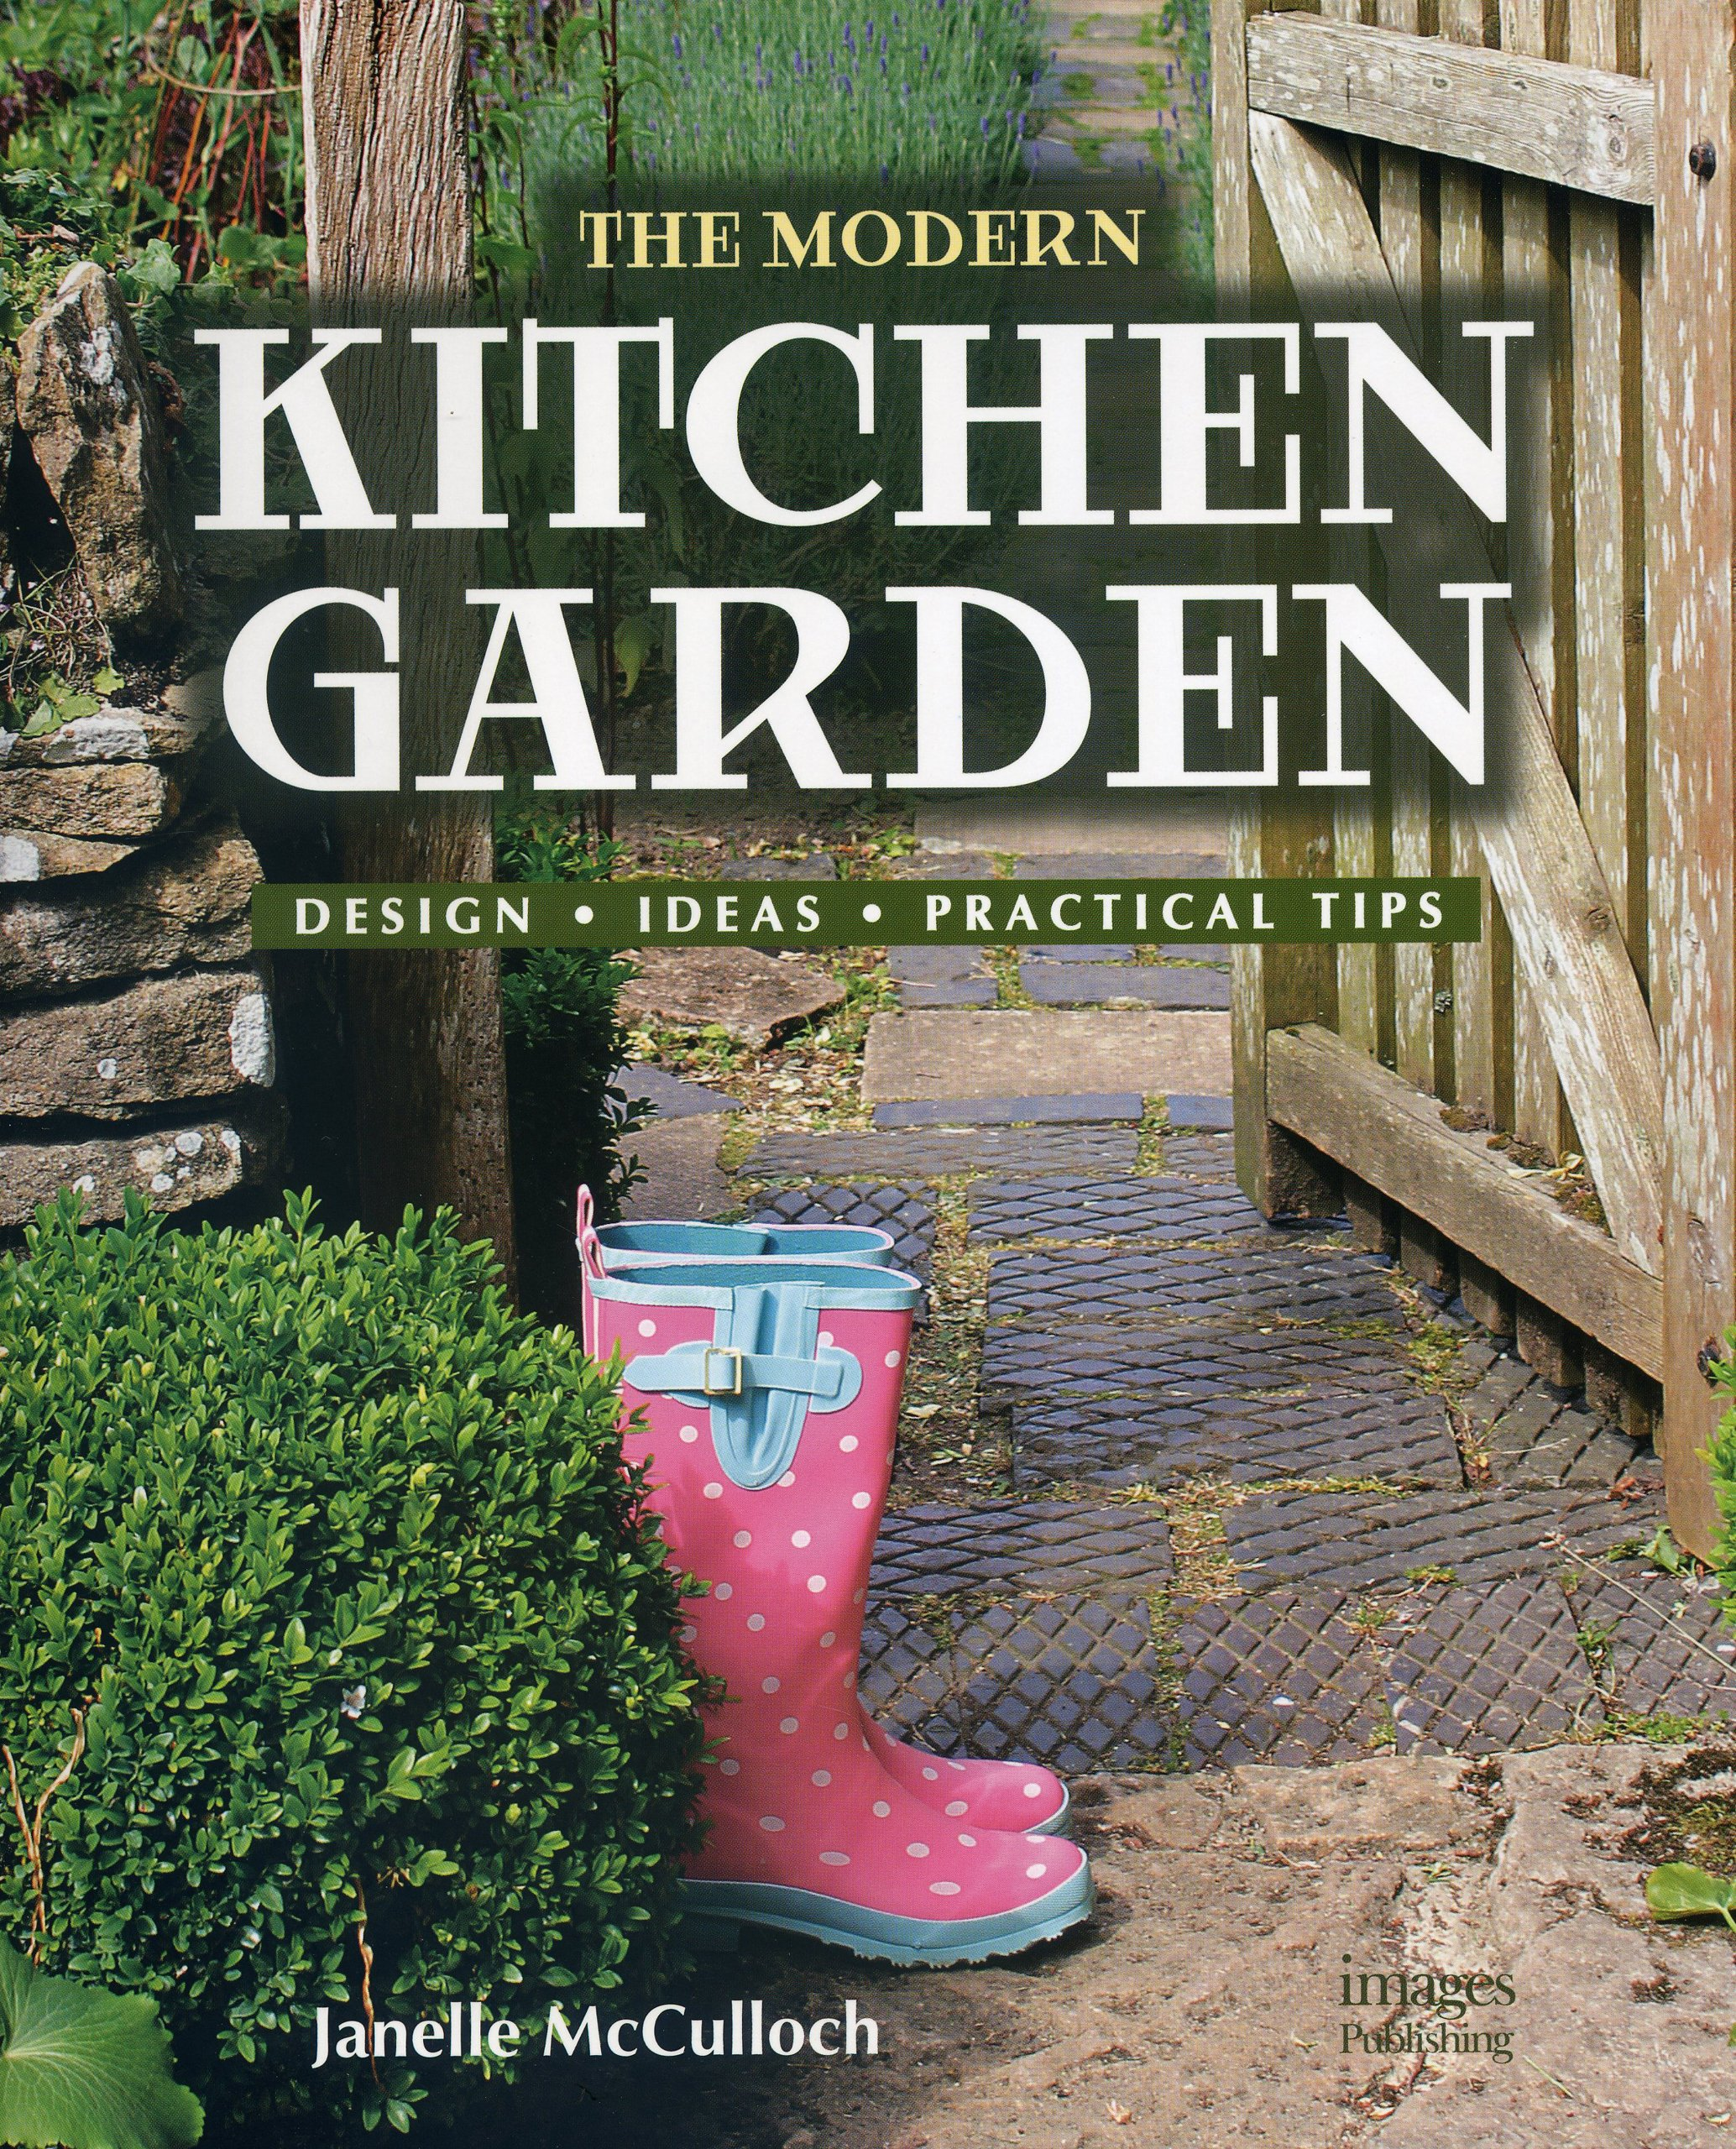 Kitchen Gardening Tips The Modern Kitchen Garden Design Ideas Practical Tips Janelle